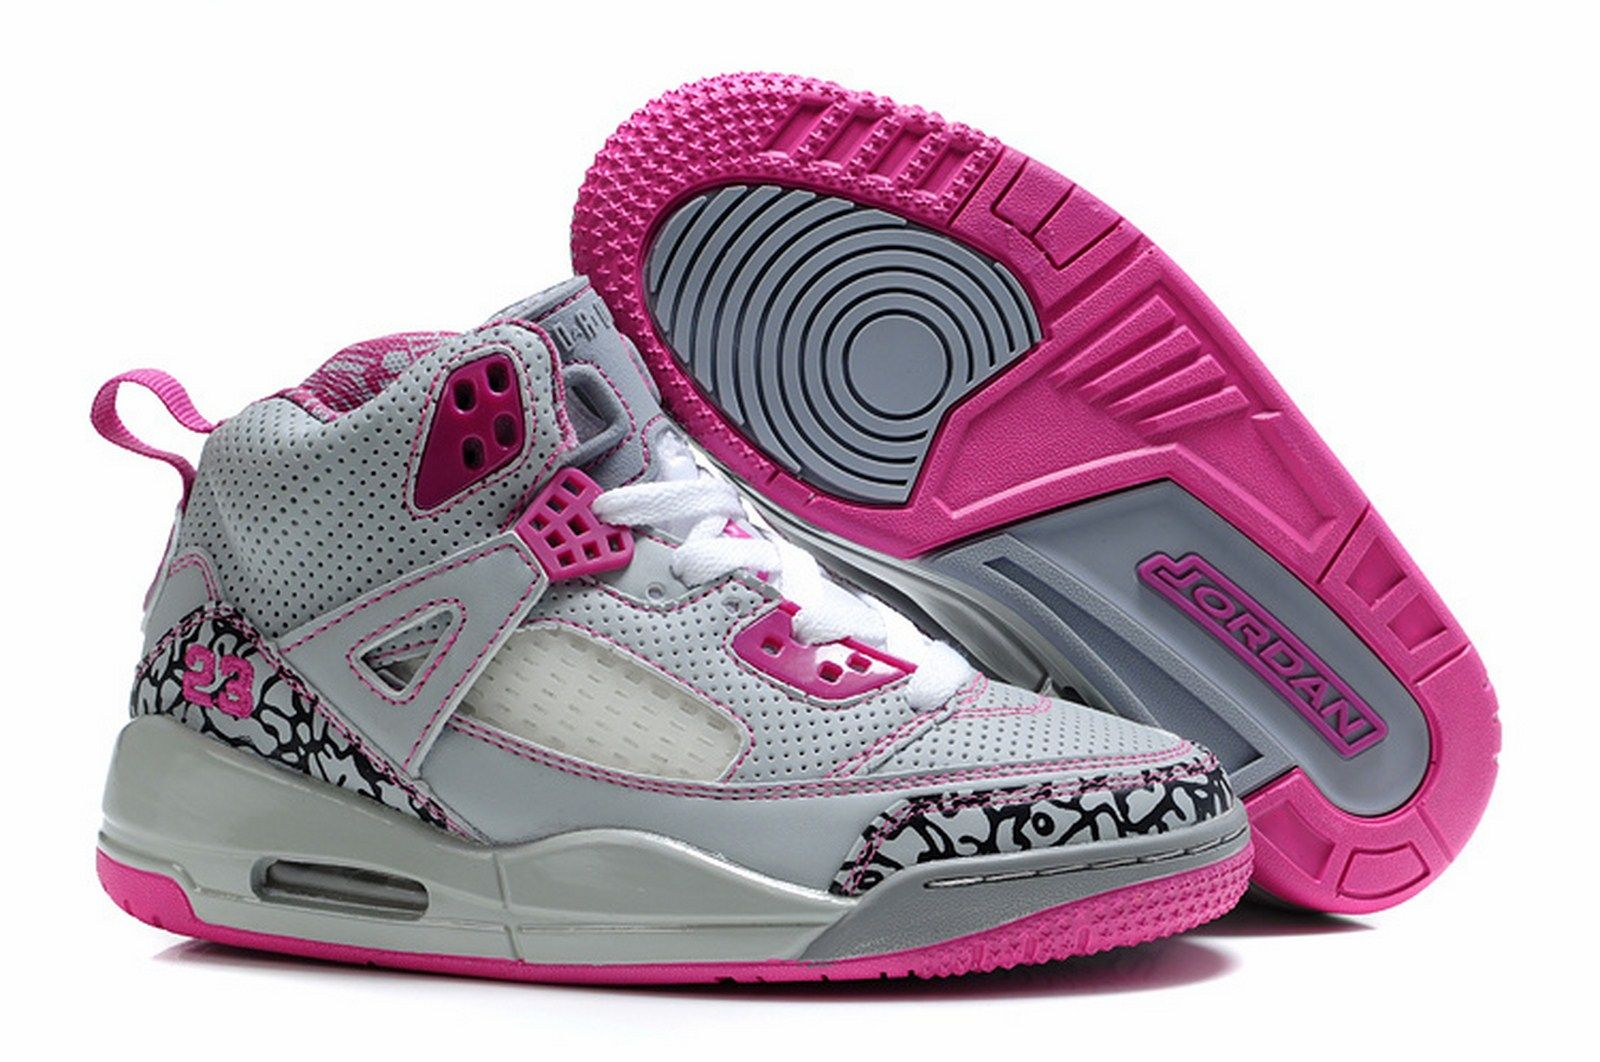 Air Jordan Nike kids Shoes picture | old sport | Pinterest ...